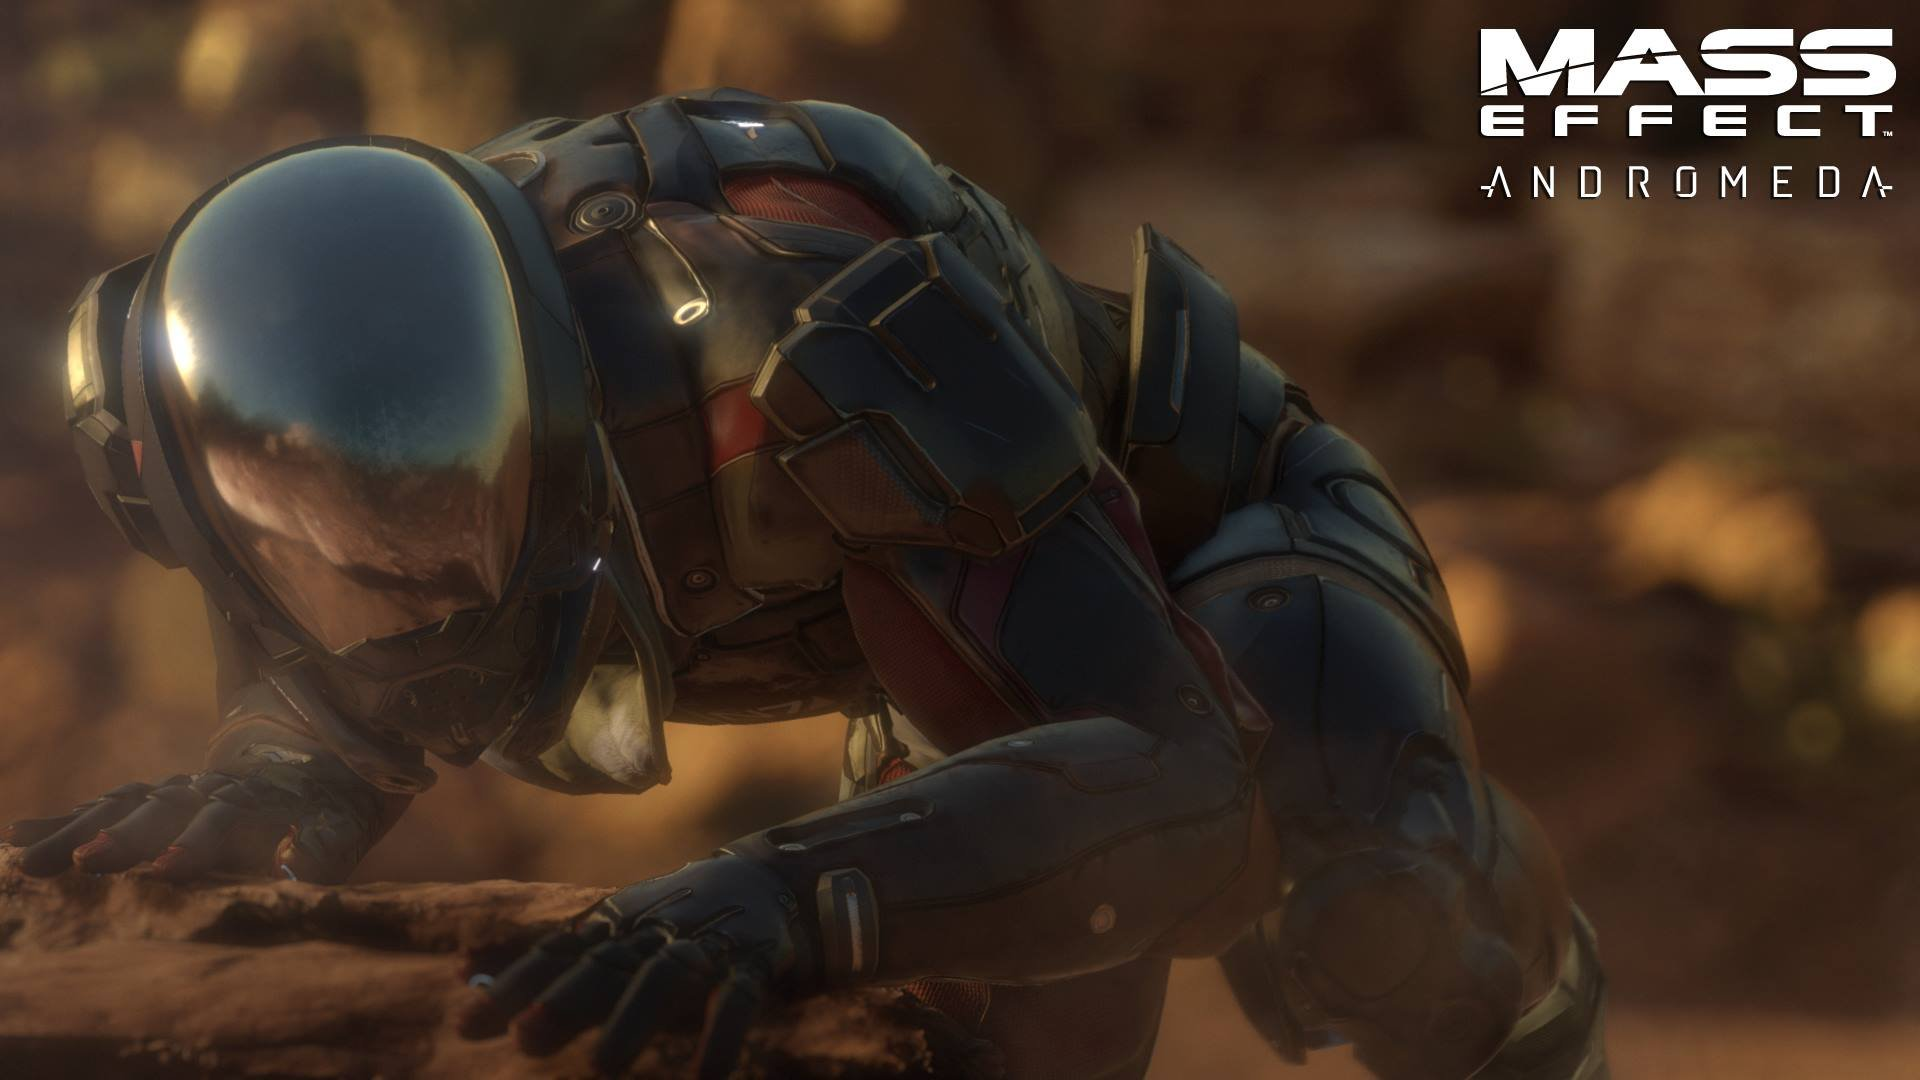 Mass Effect Andromeda Full Hd 3d Wallpapers: Mass Effect Andromeda Game Poster, HD Games, 4k Wallpapers